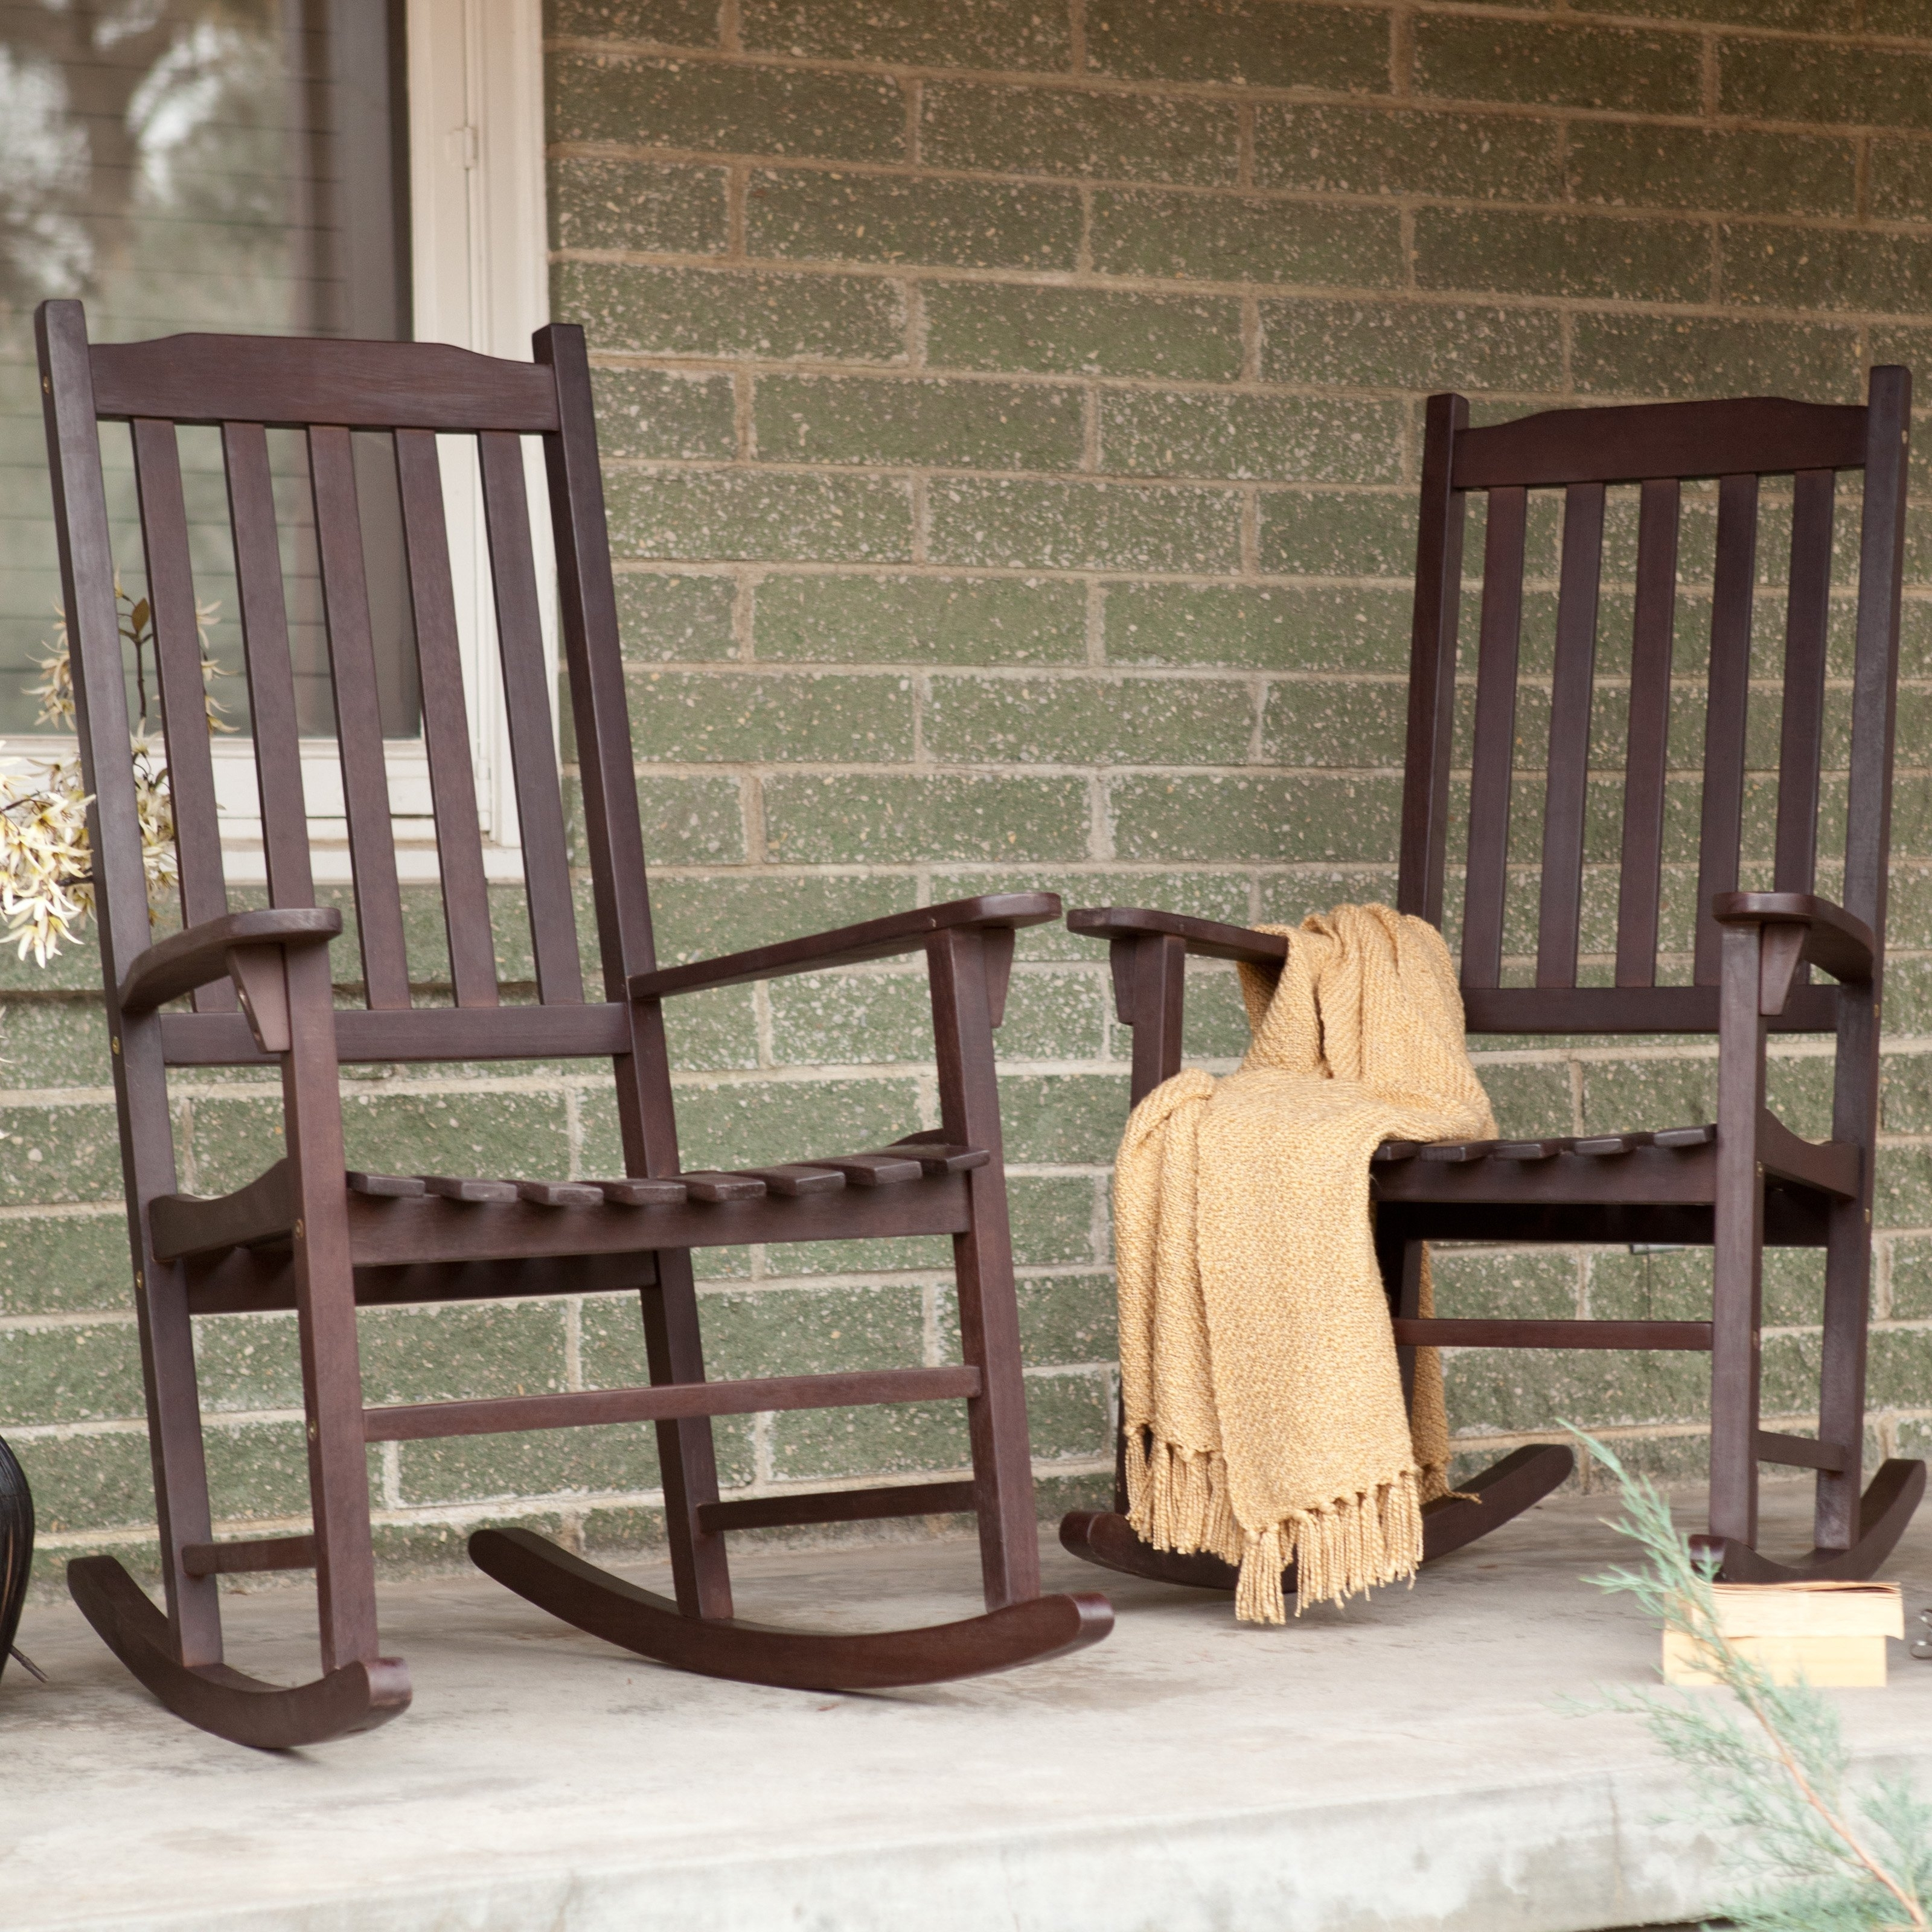 Rocking Chair Outdoor Wooden Regarding Recent Garden & Patio Furniture : Outdoor Wooden Rocking Chairs New Chairs (View 12 of 15)